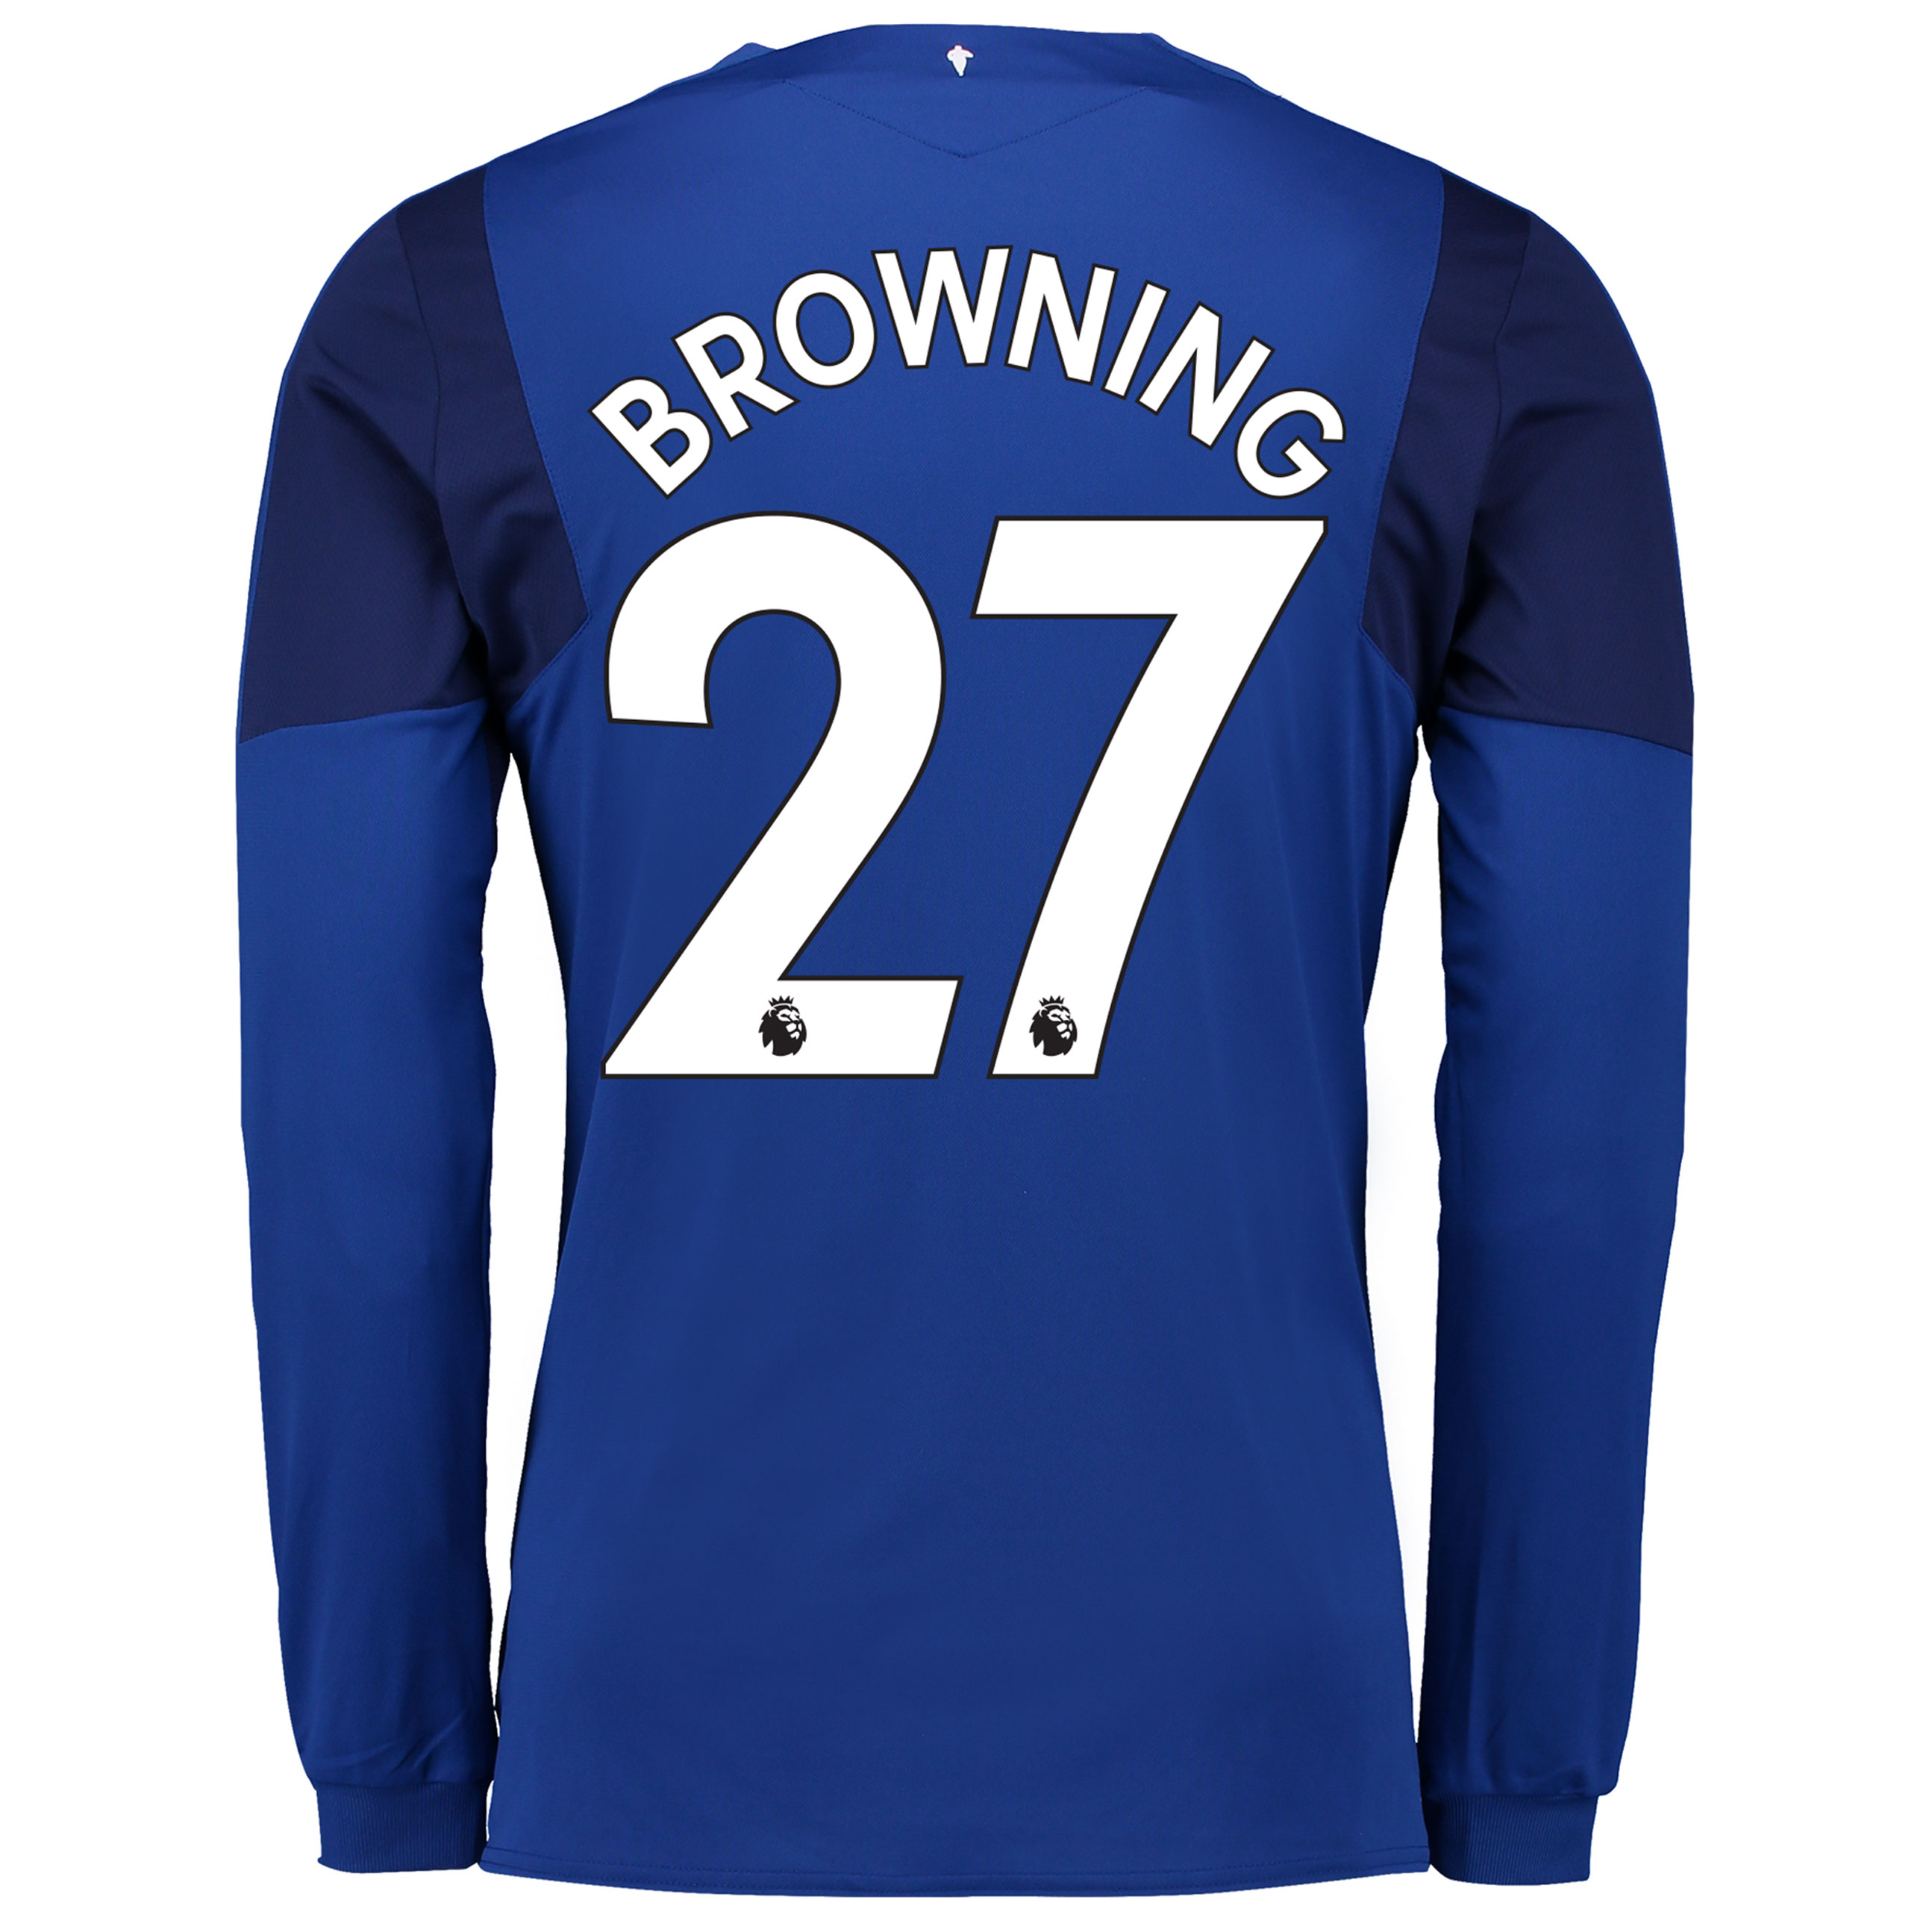 Everton Home Shirt 2017/18 - Junior - Long Sleeved with Browning 27 pr